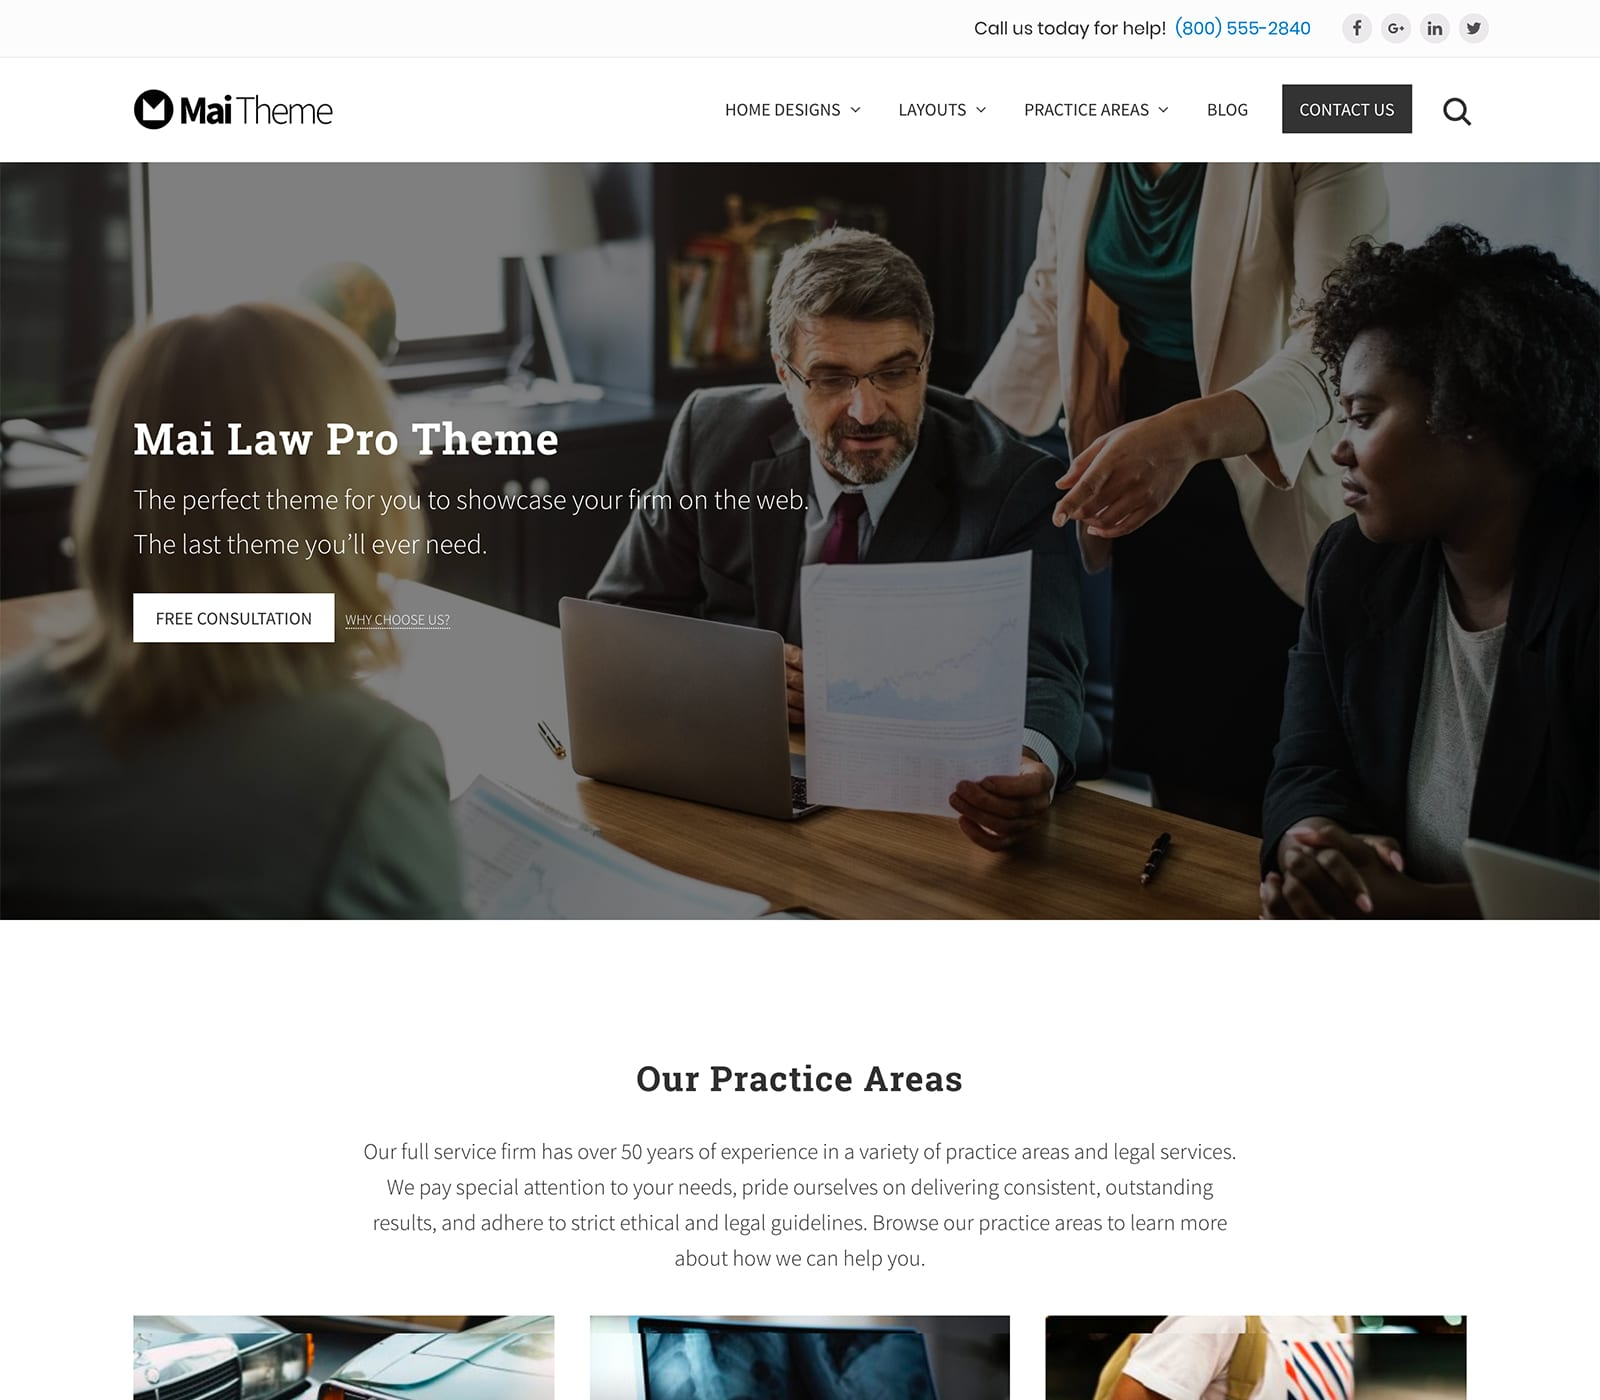 Made for law firms, the Mai Law Pro Theme is a search engine friendly child theme designed to give a law firm or professional practice a contemporary design that is also mobile-responsive. It's simple and flexible and offers 9 layouts. This theme also provides WooCommerce support and customizations.